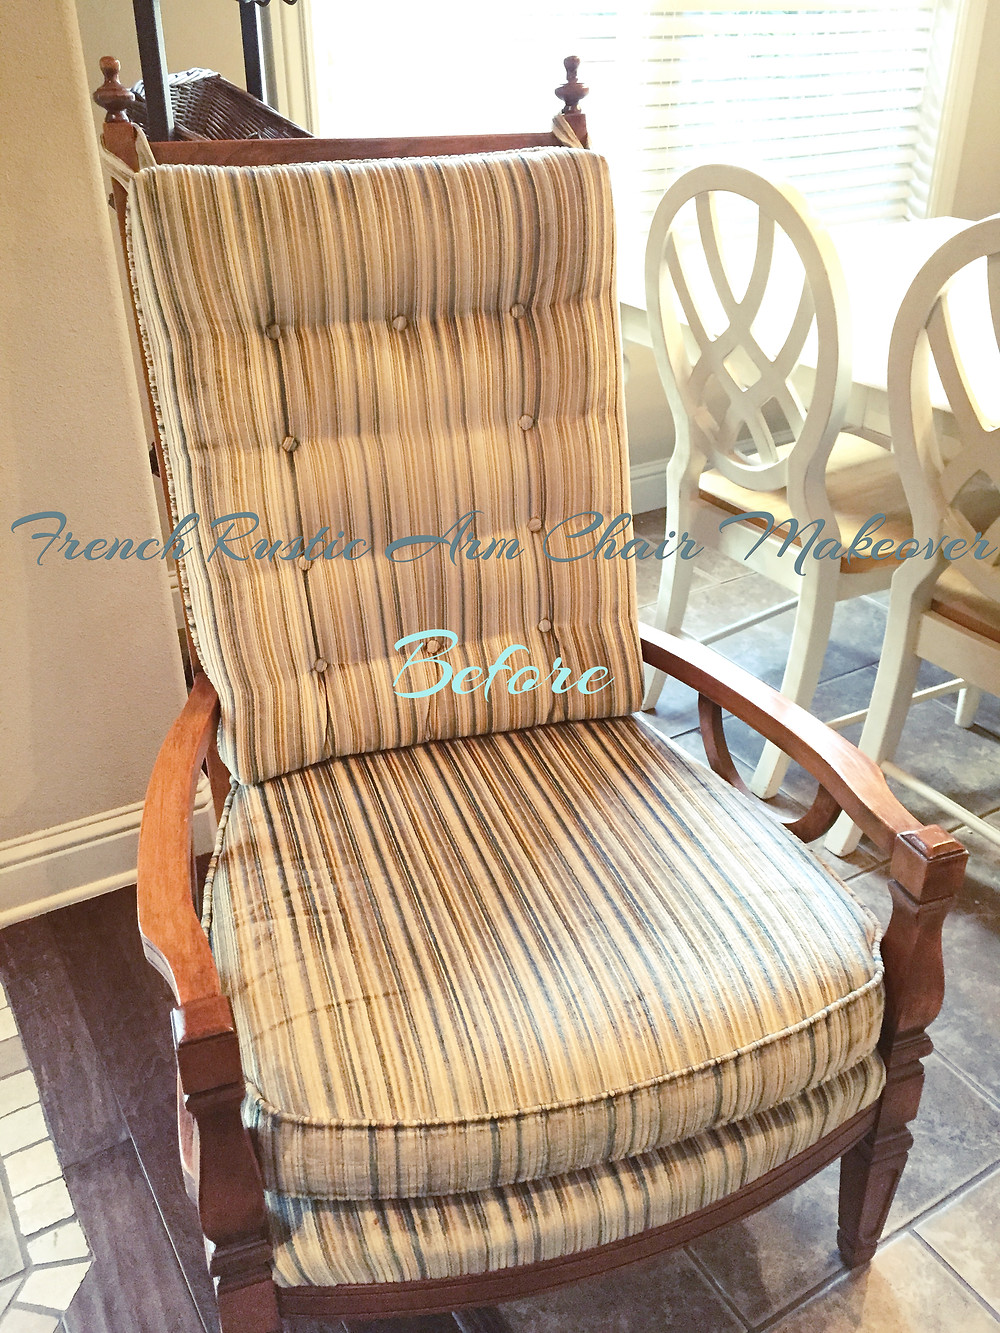 French Rustic chair before.jpg